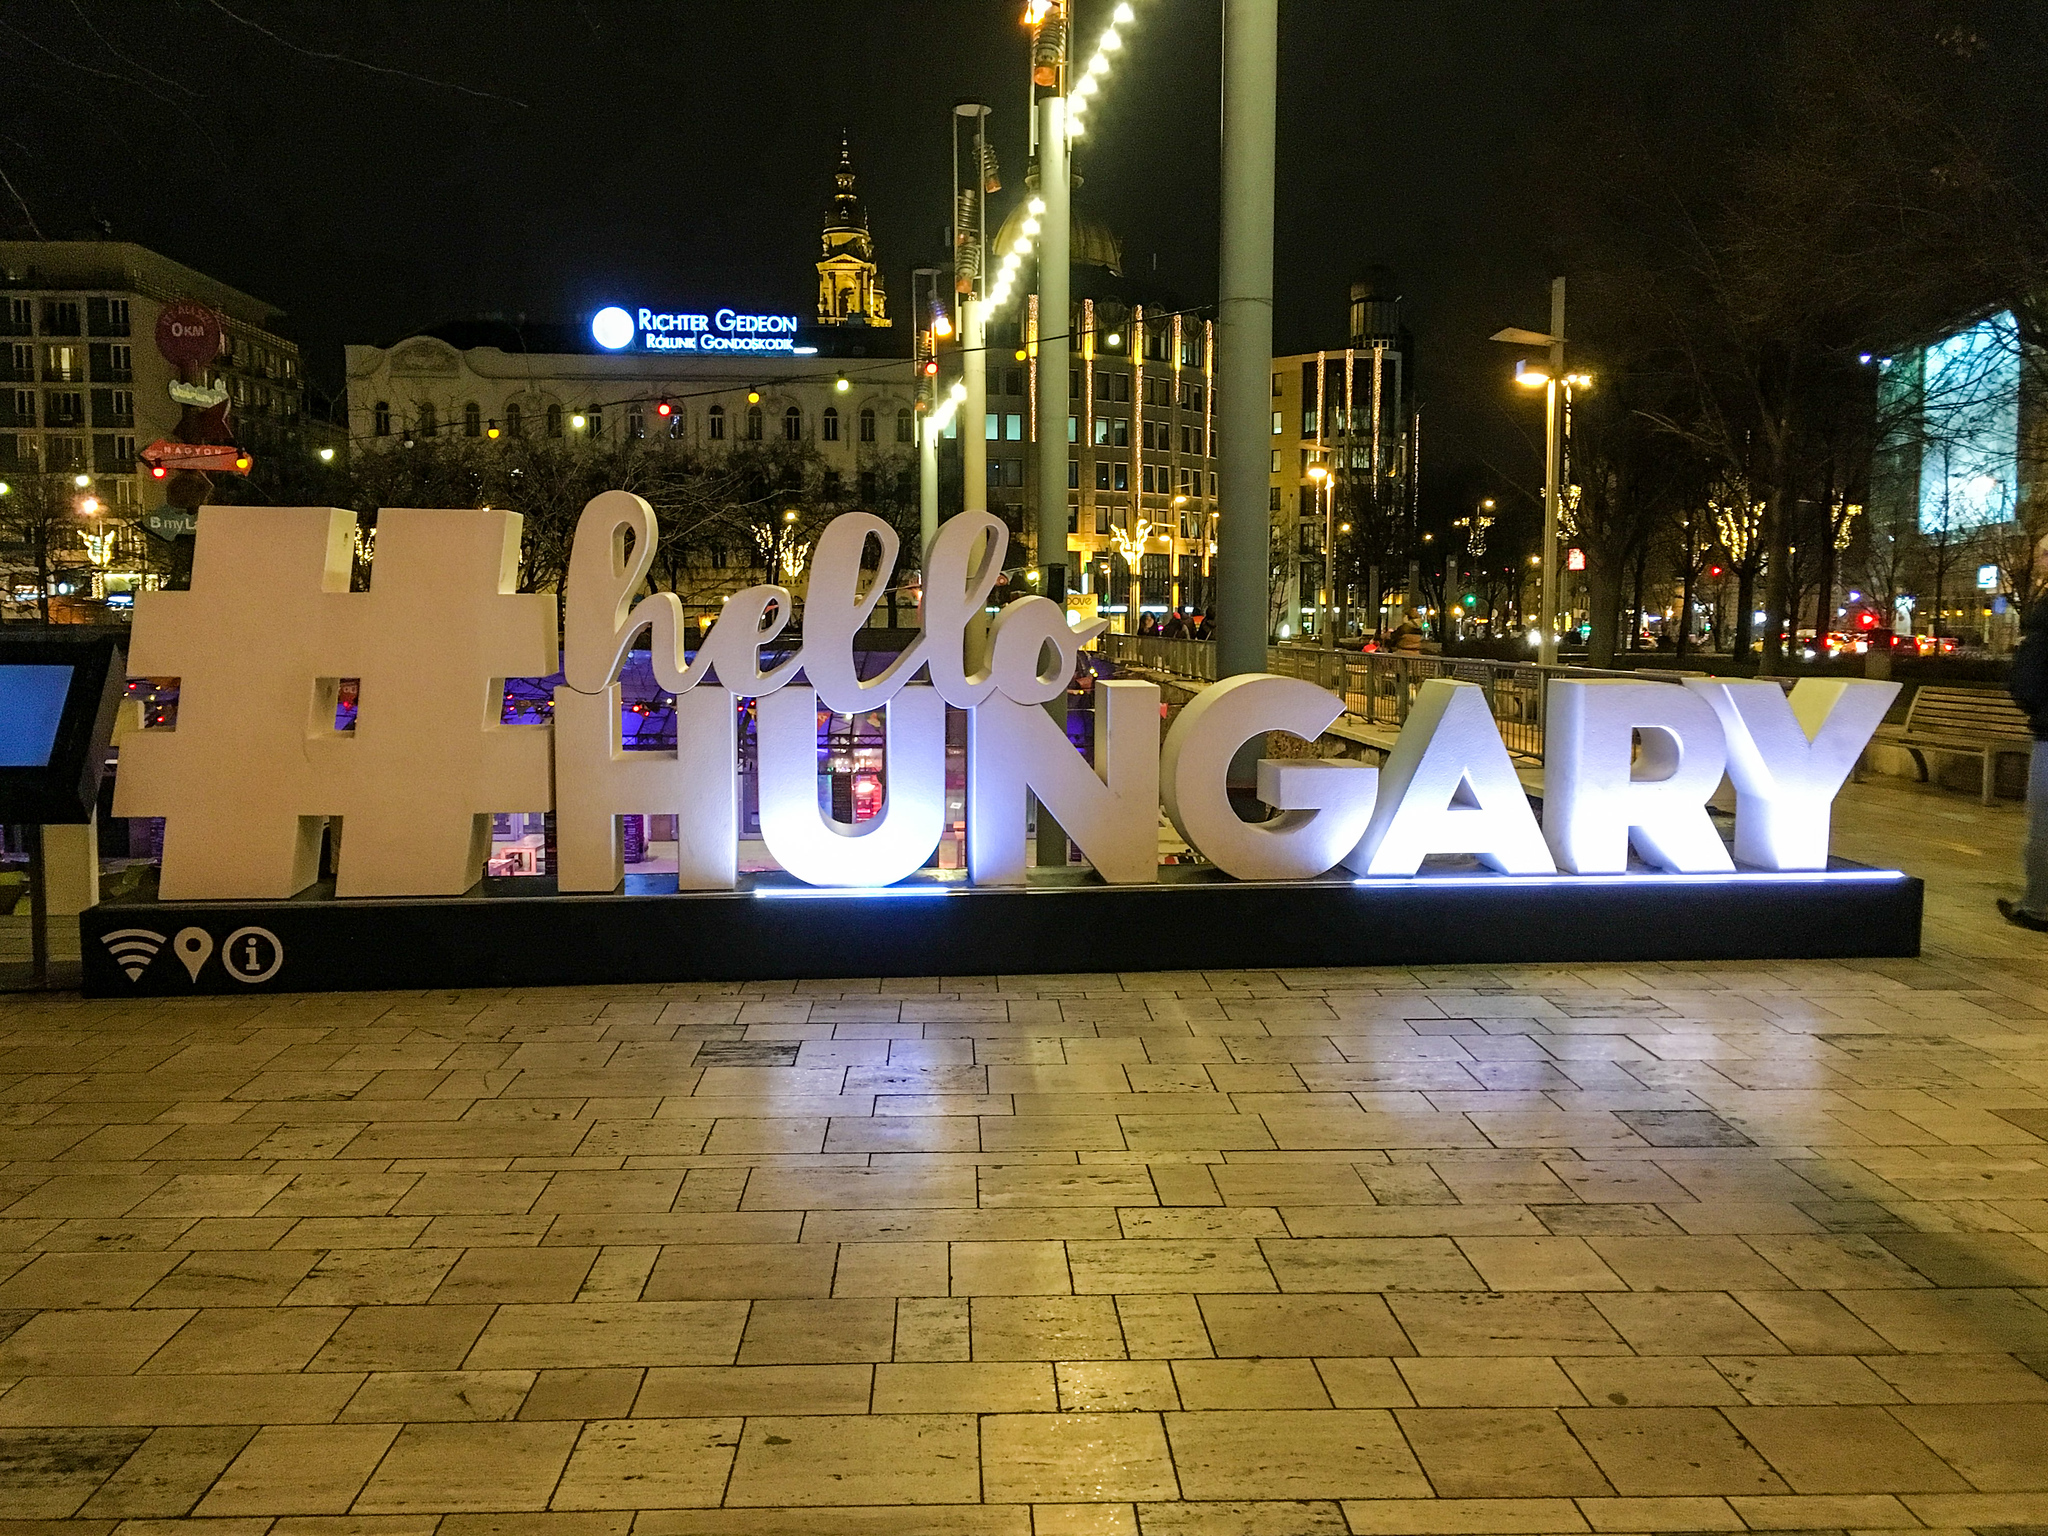 what to wear in budapest in january: a warm jacket to see the city at night